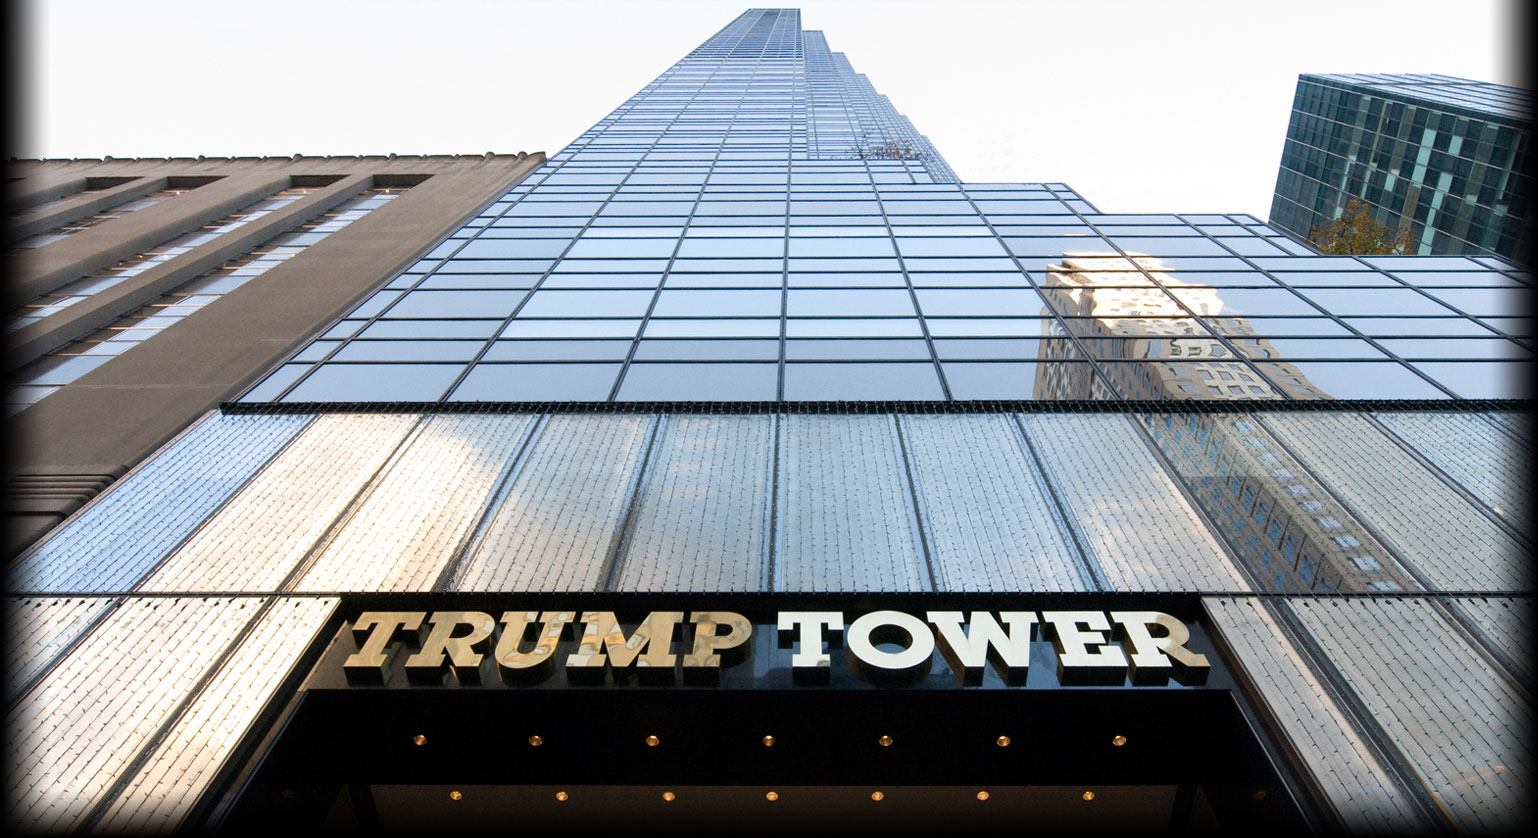 Tháp Trump Tower tại New York.